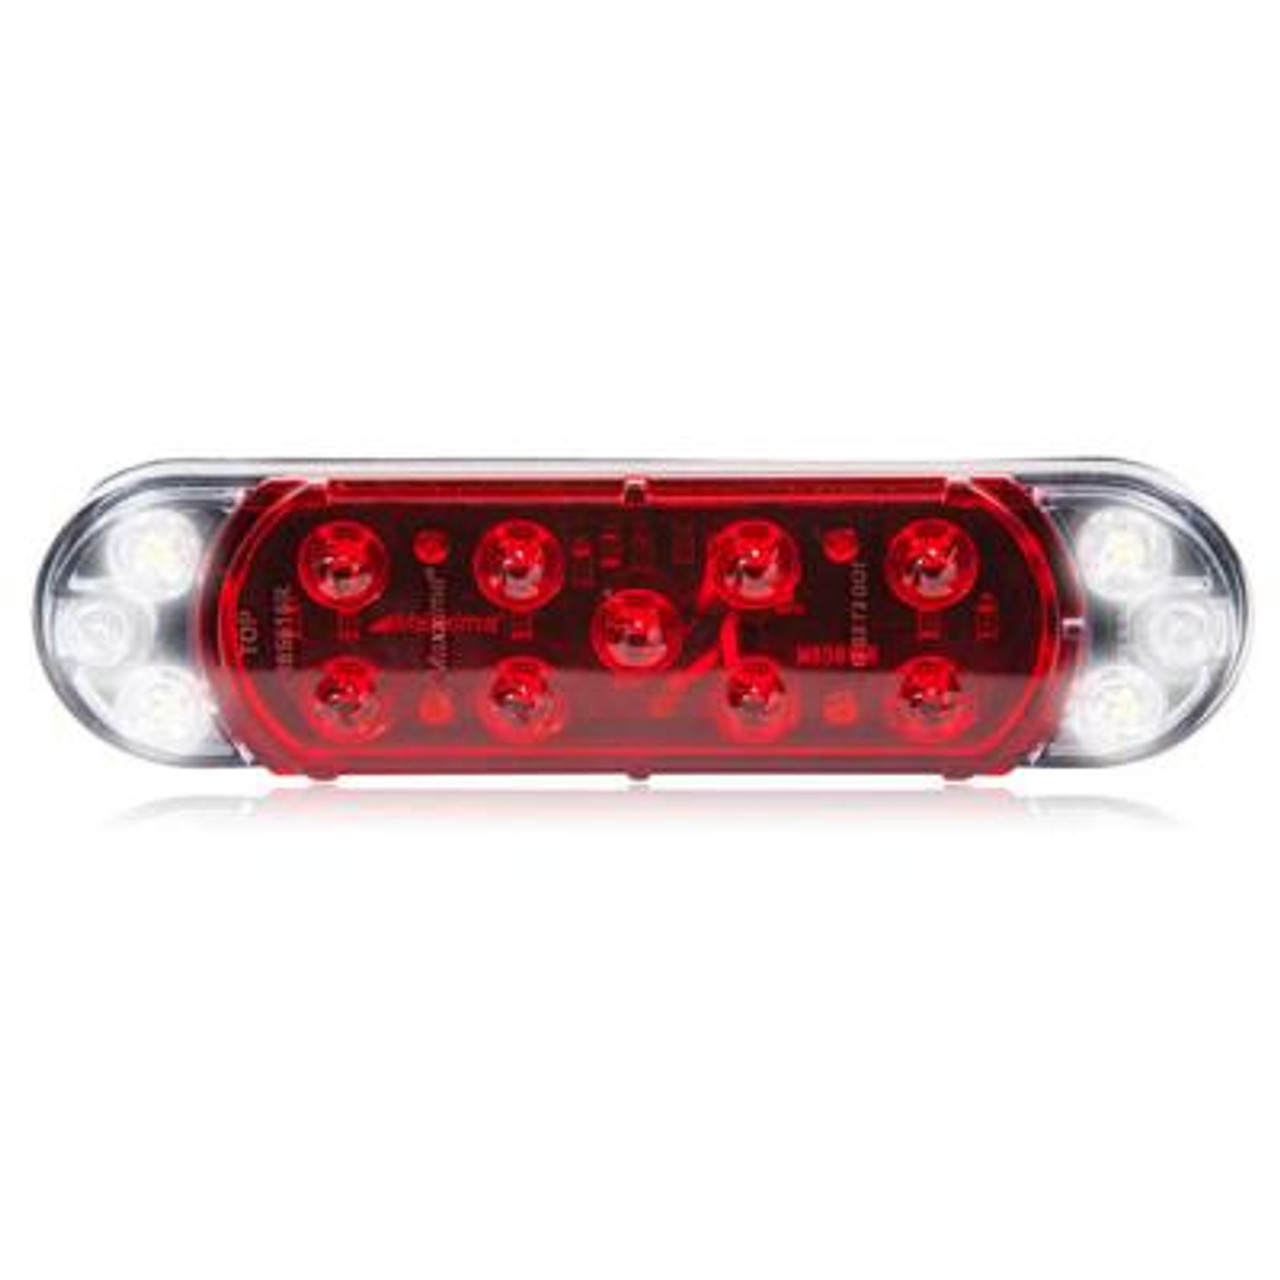 Hybrid Oval LED Stop/Tail/Turn/Back Up Lamp